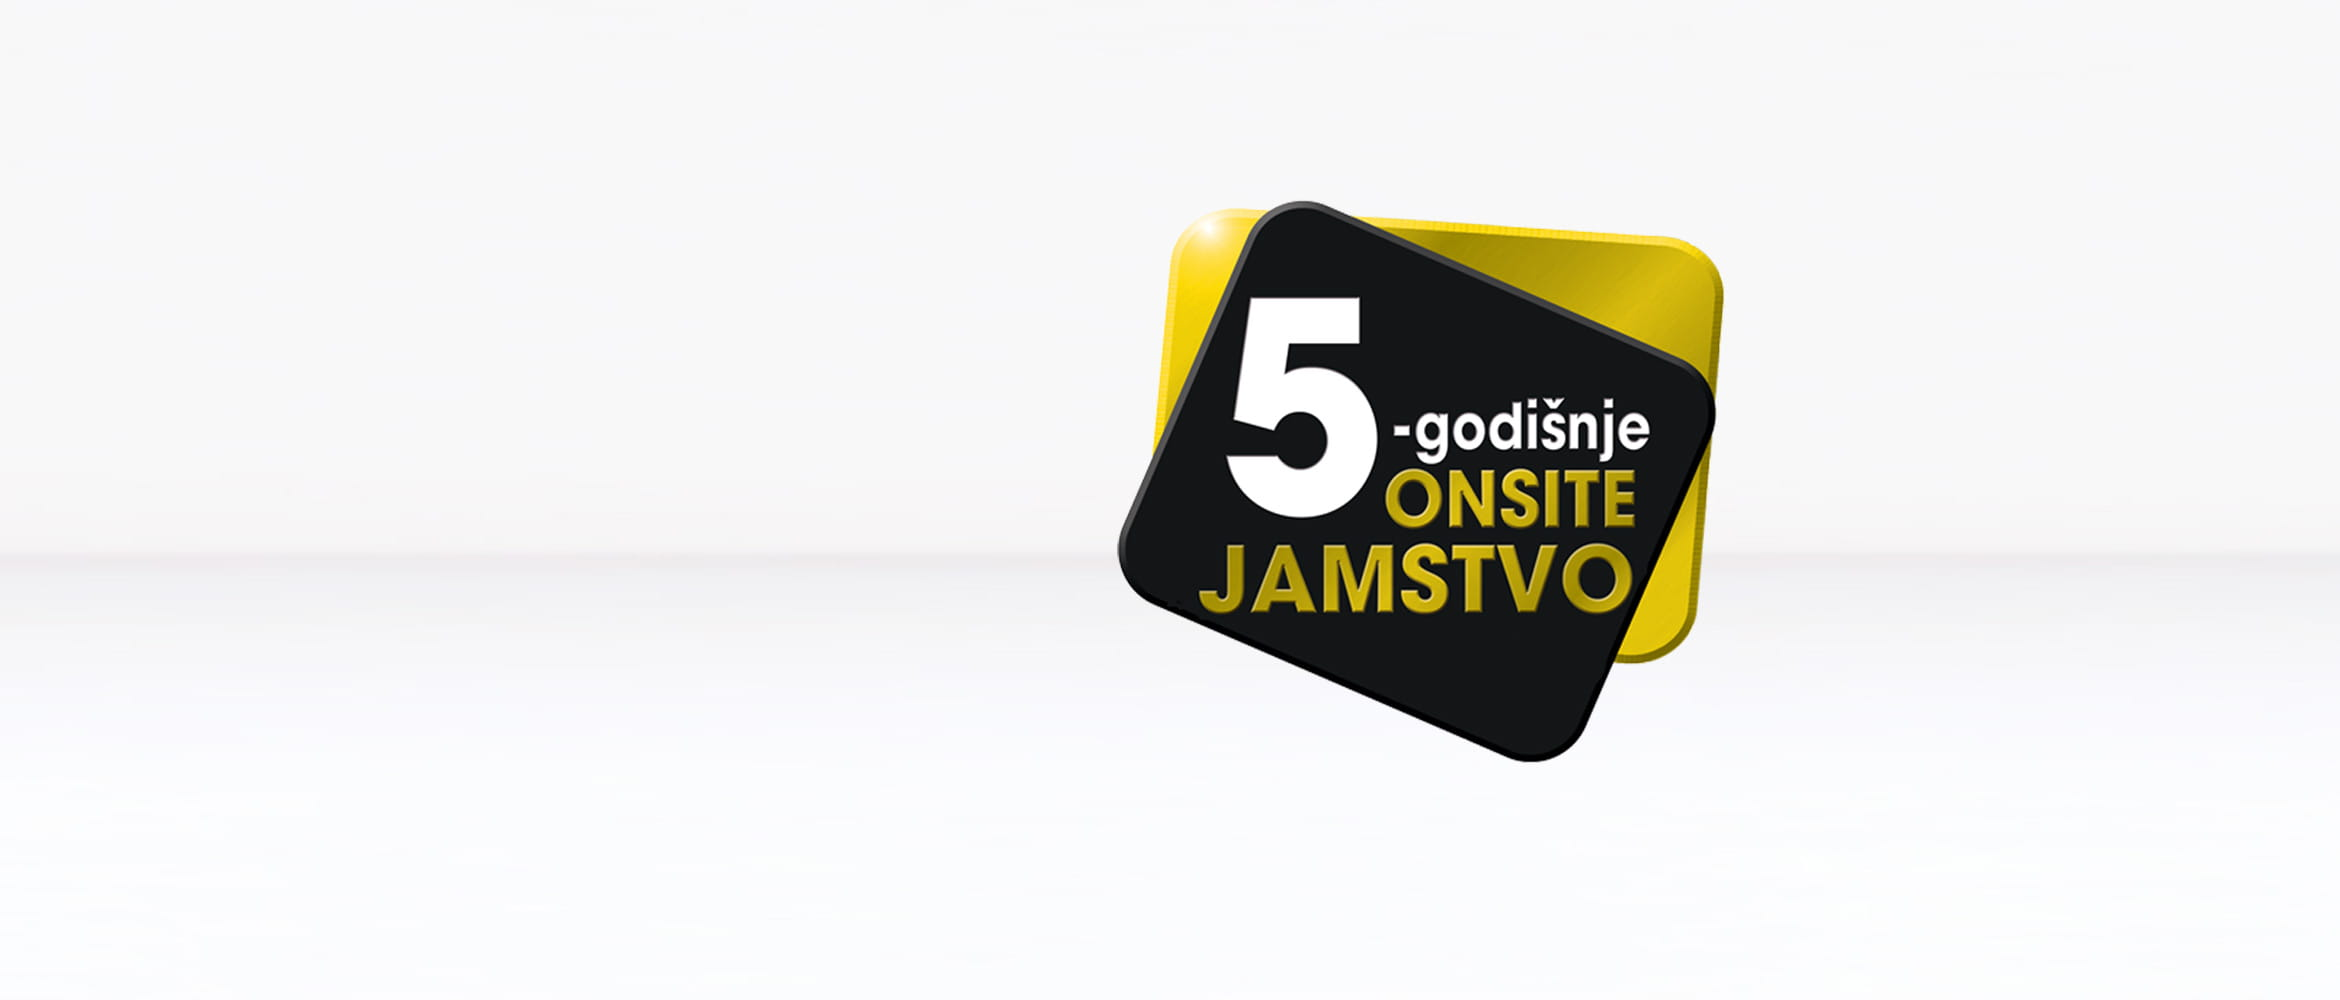 Brother 5 godina jamstva full banner image